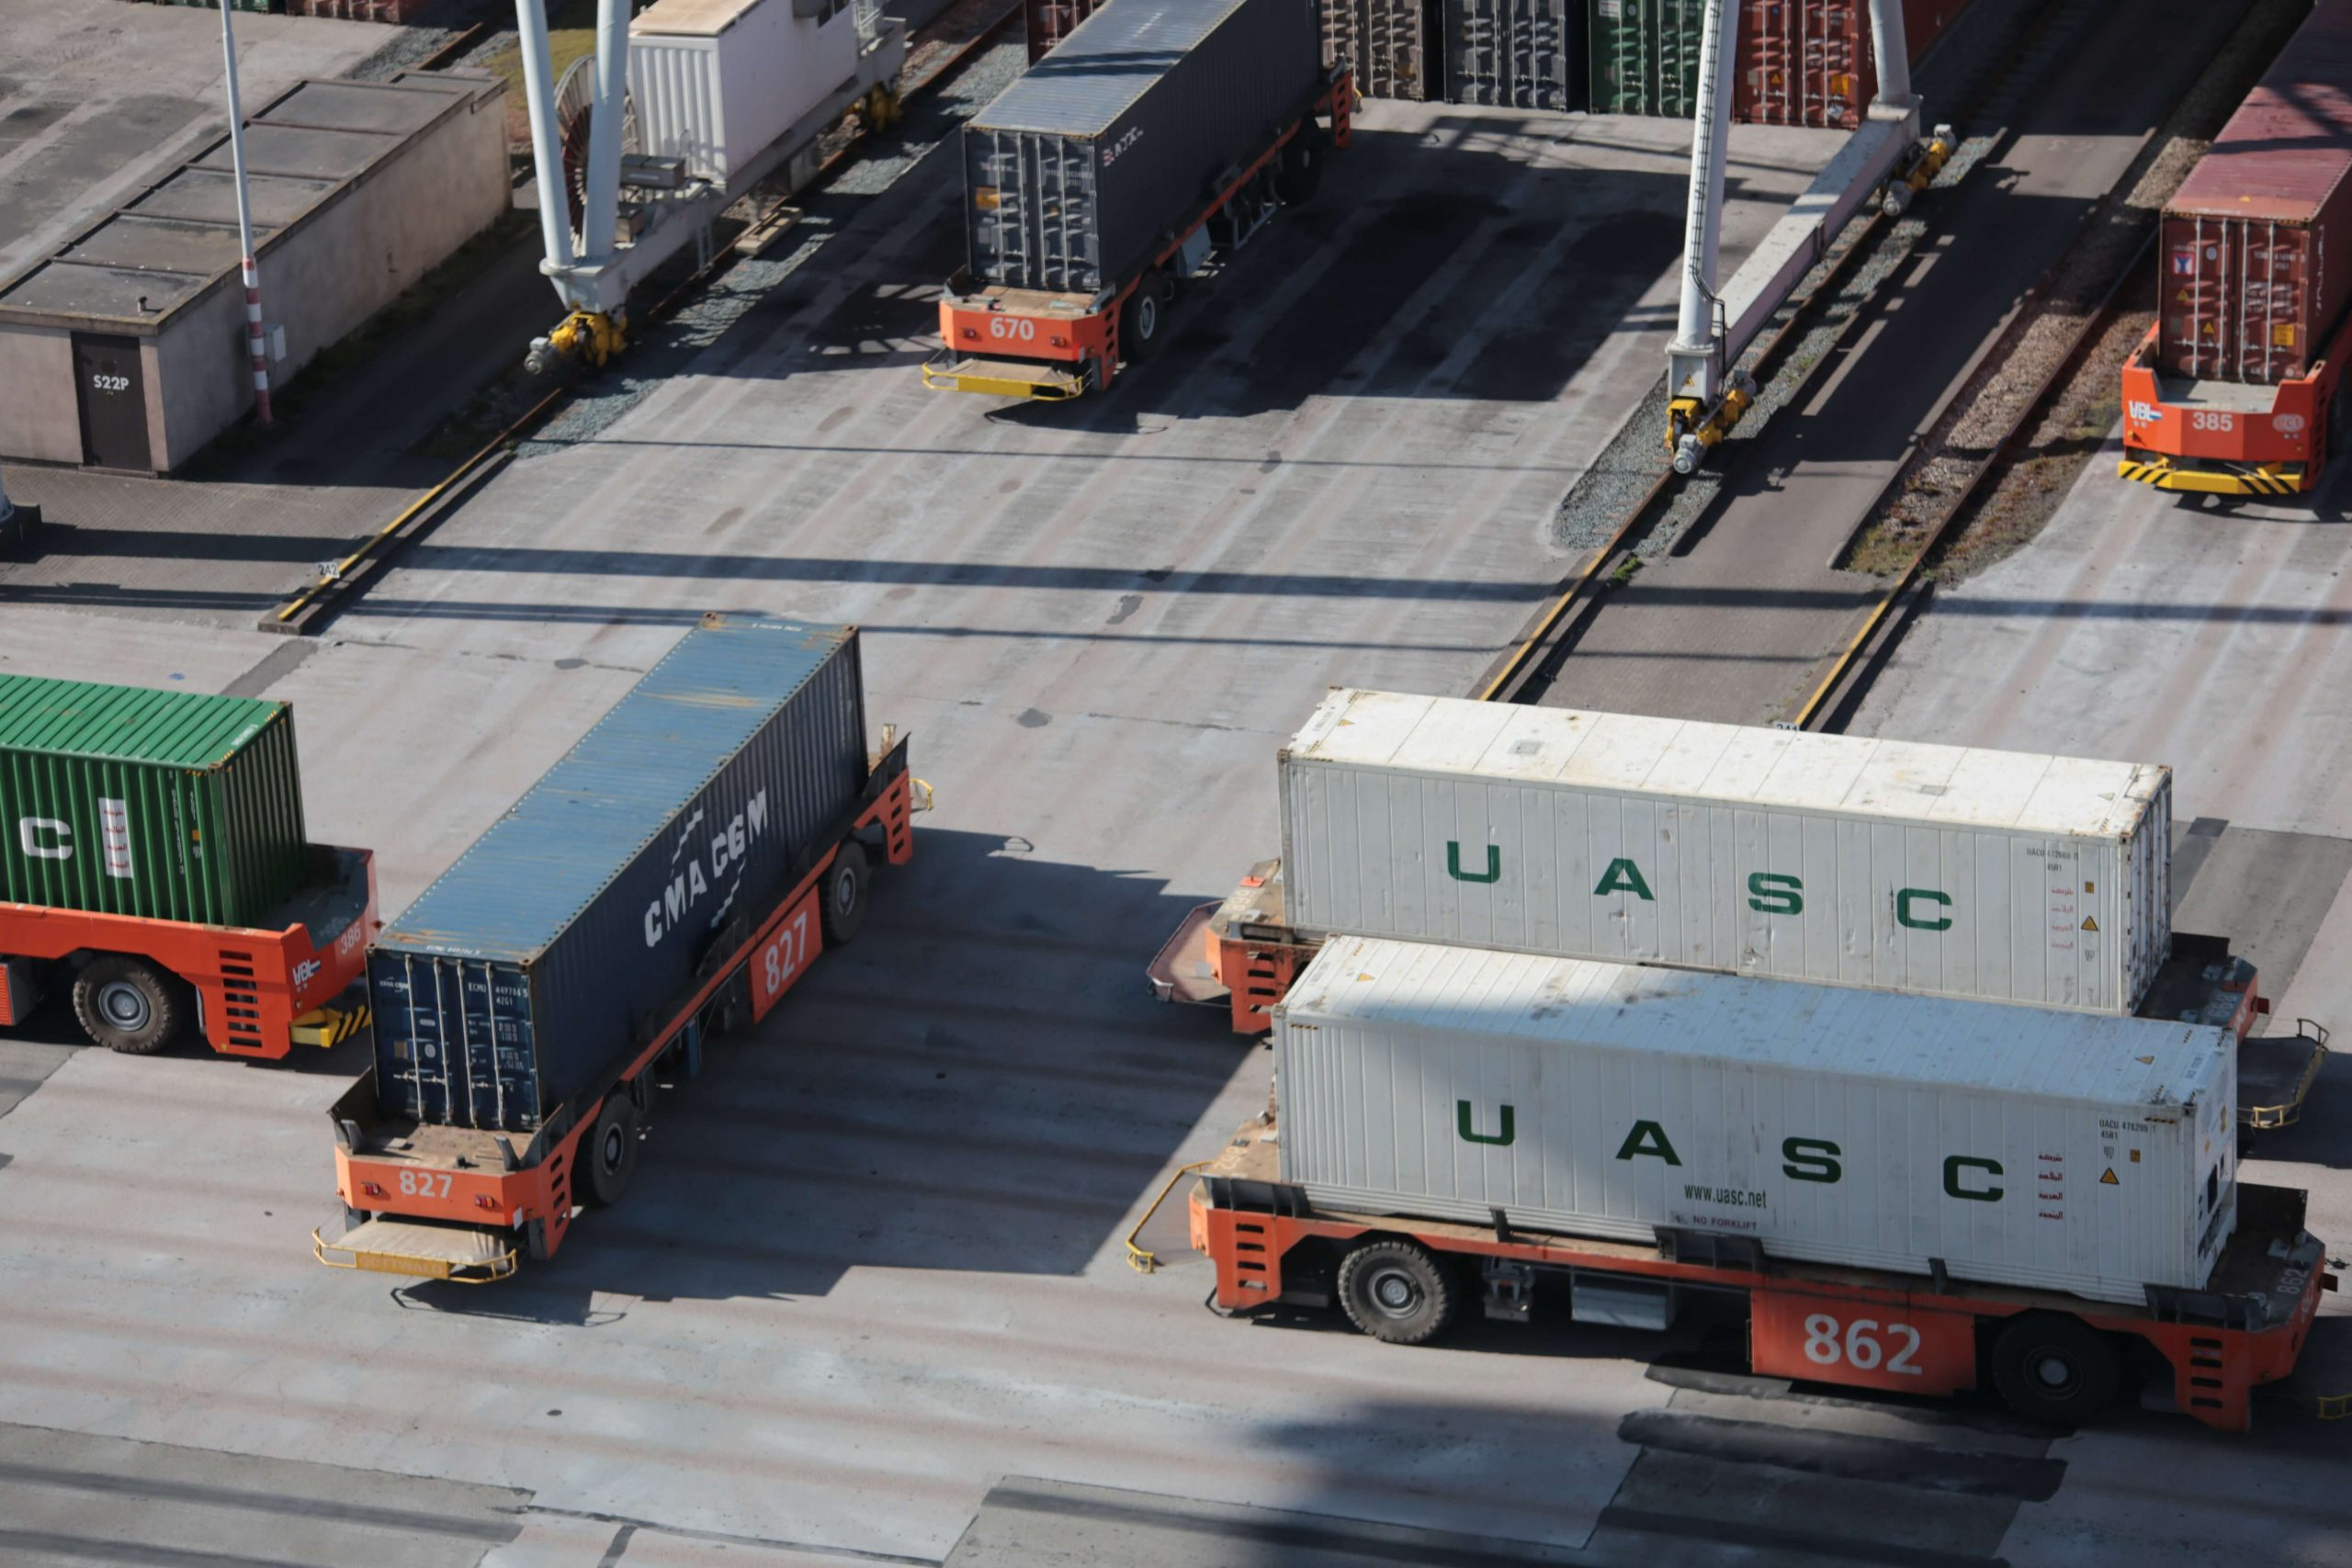 The best route planning software for Less-than-truckload carriers and shippers